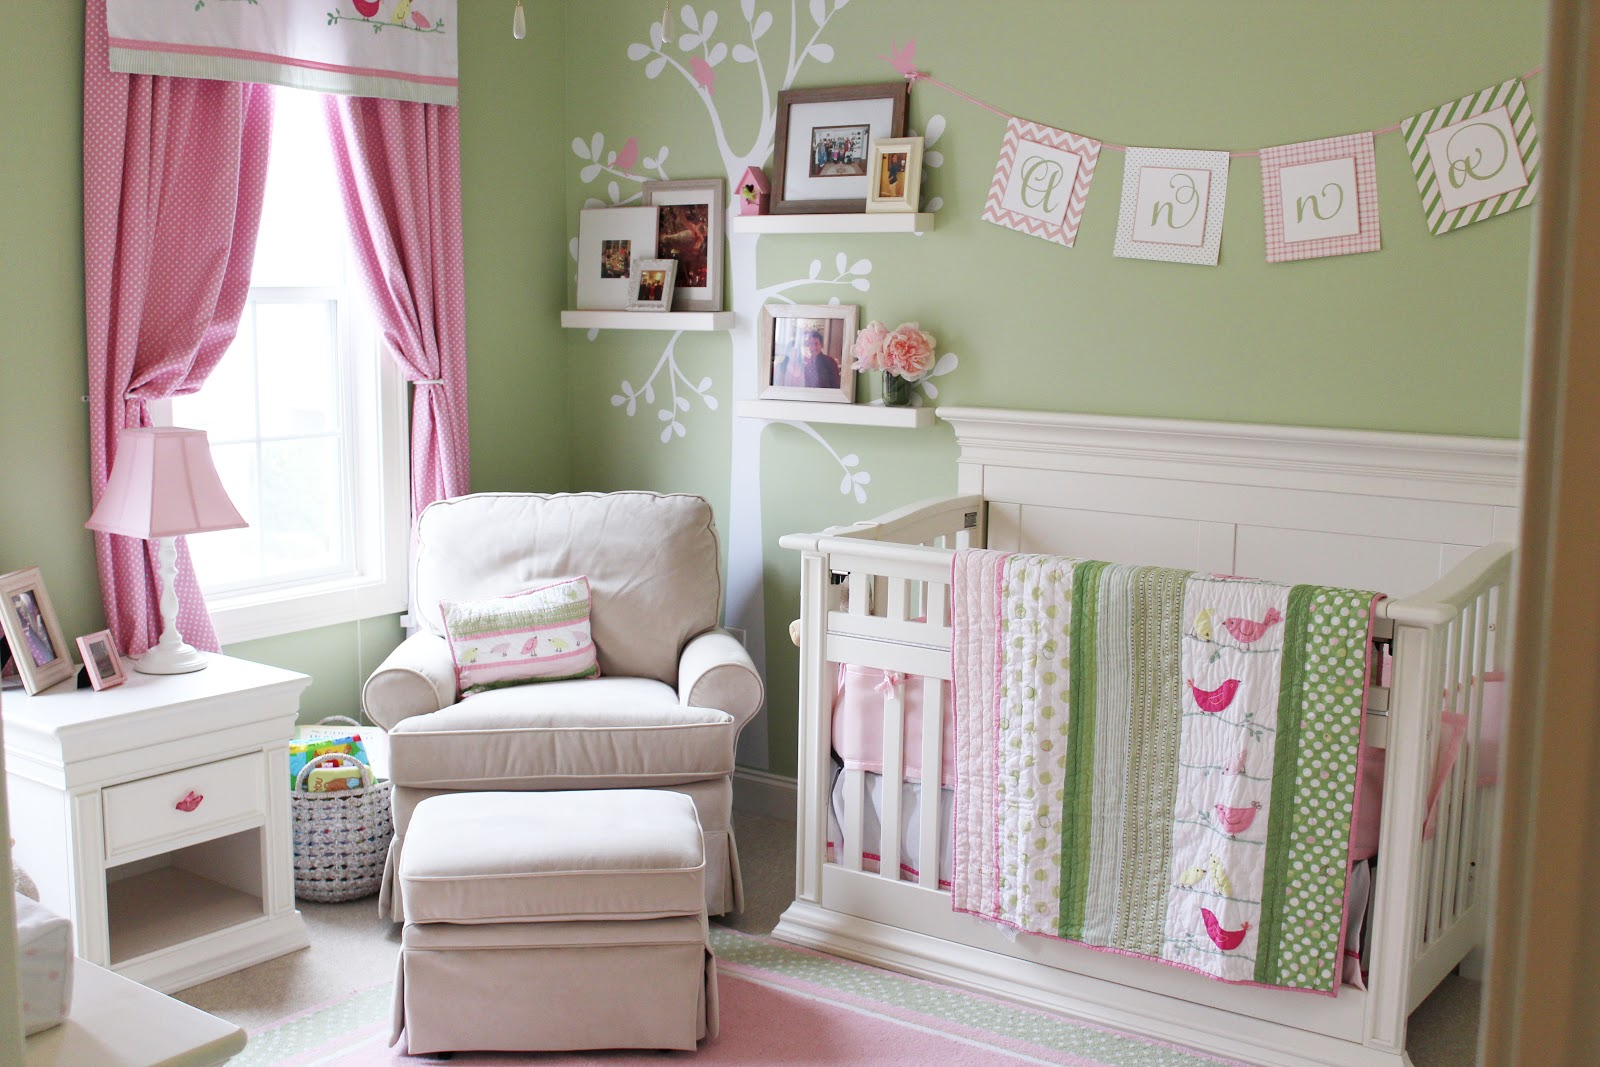 anna 39 s pink and green nursery and free printable izzy designs llc. Black Bedroom Furniture Sets. Home Design Ideas